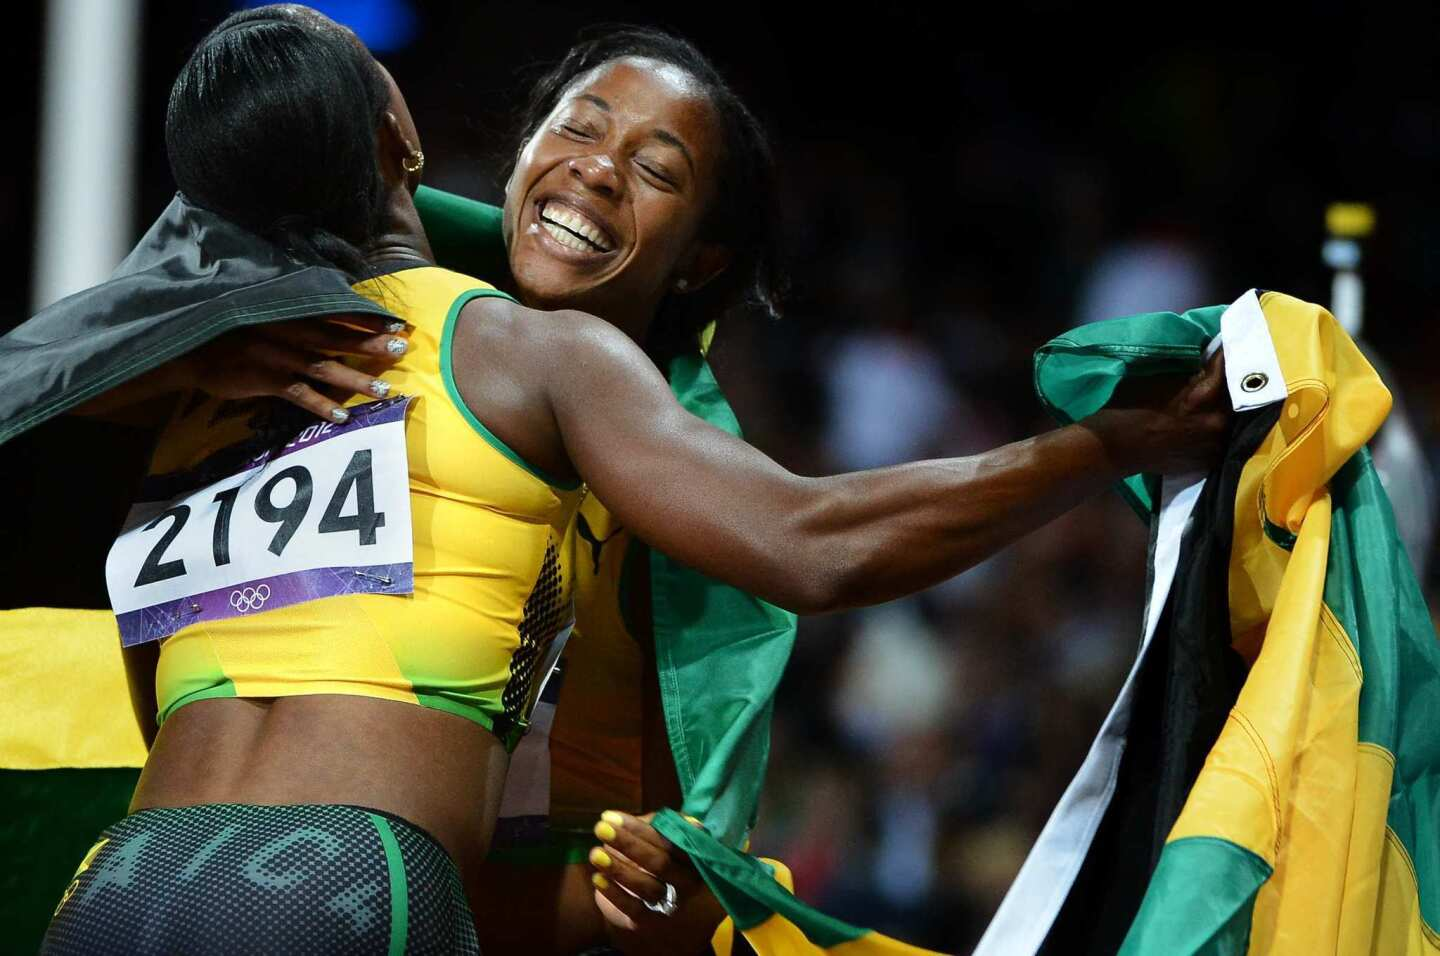 Gold medal winner Shelly-Ann Fraser-Pryce, right, and bronze medal winner Veronica Campbell-Brown embrace after the 100-meter finals. Both are from Jamaica.